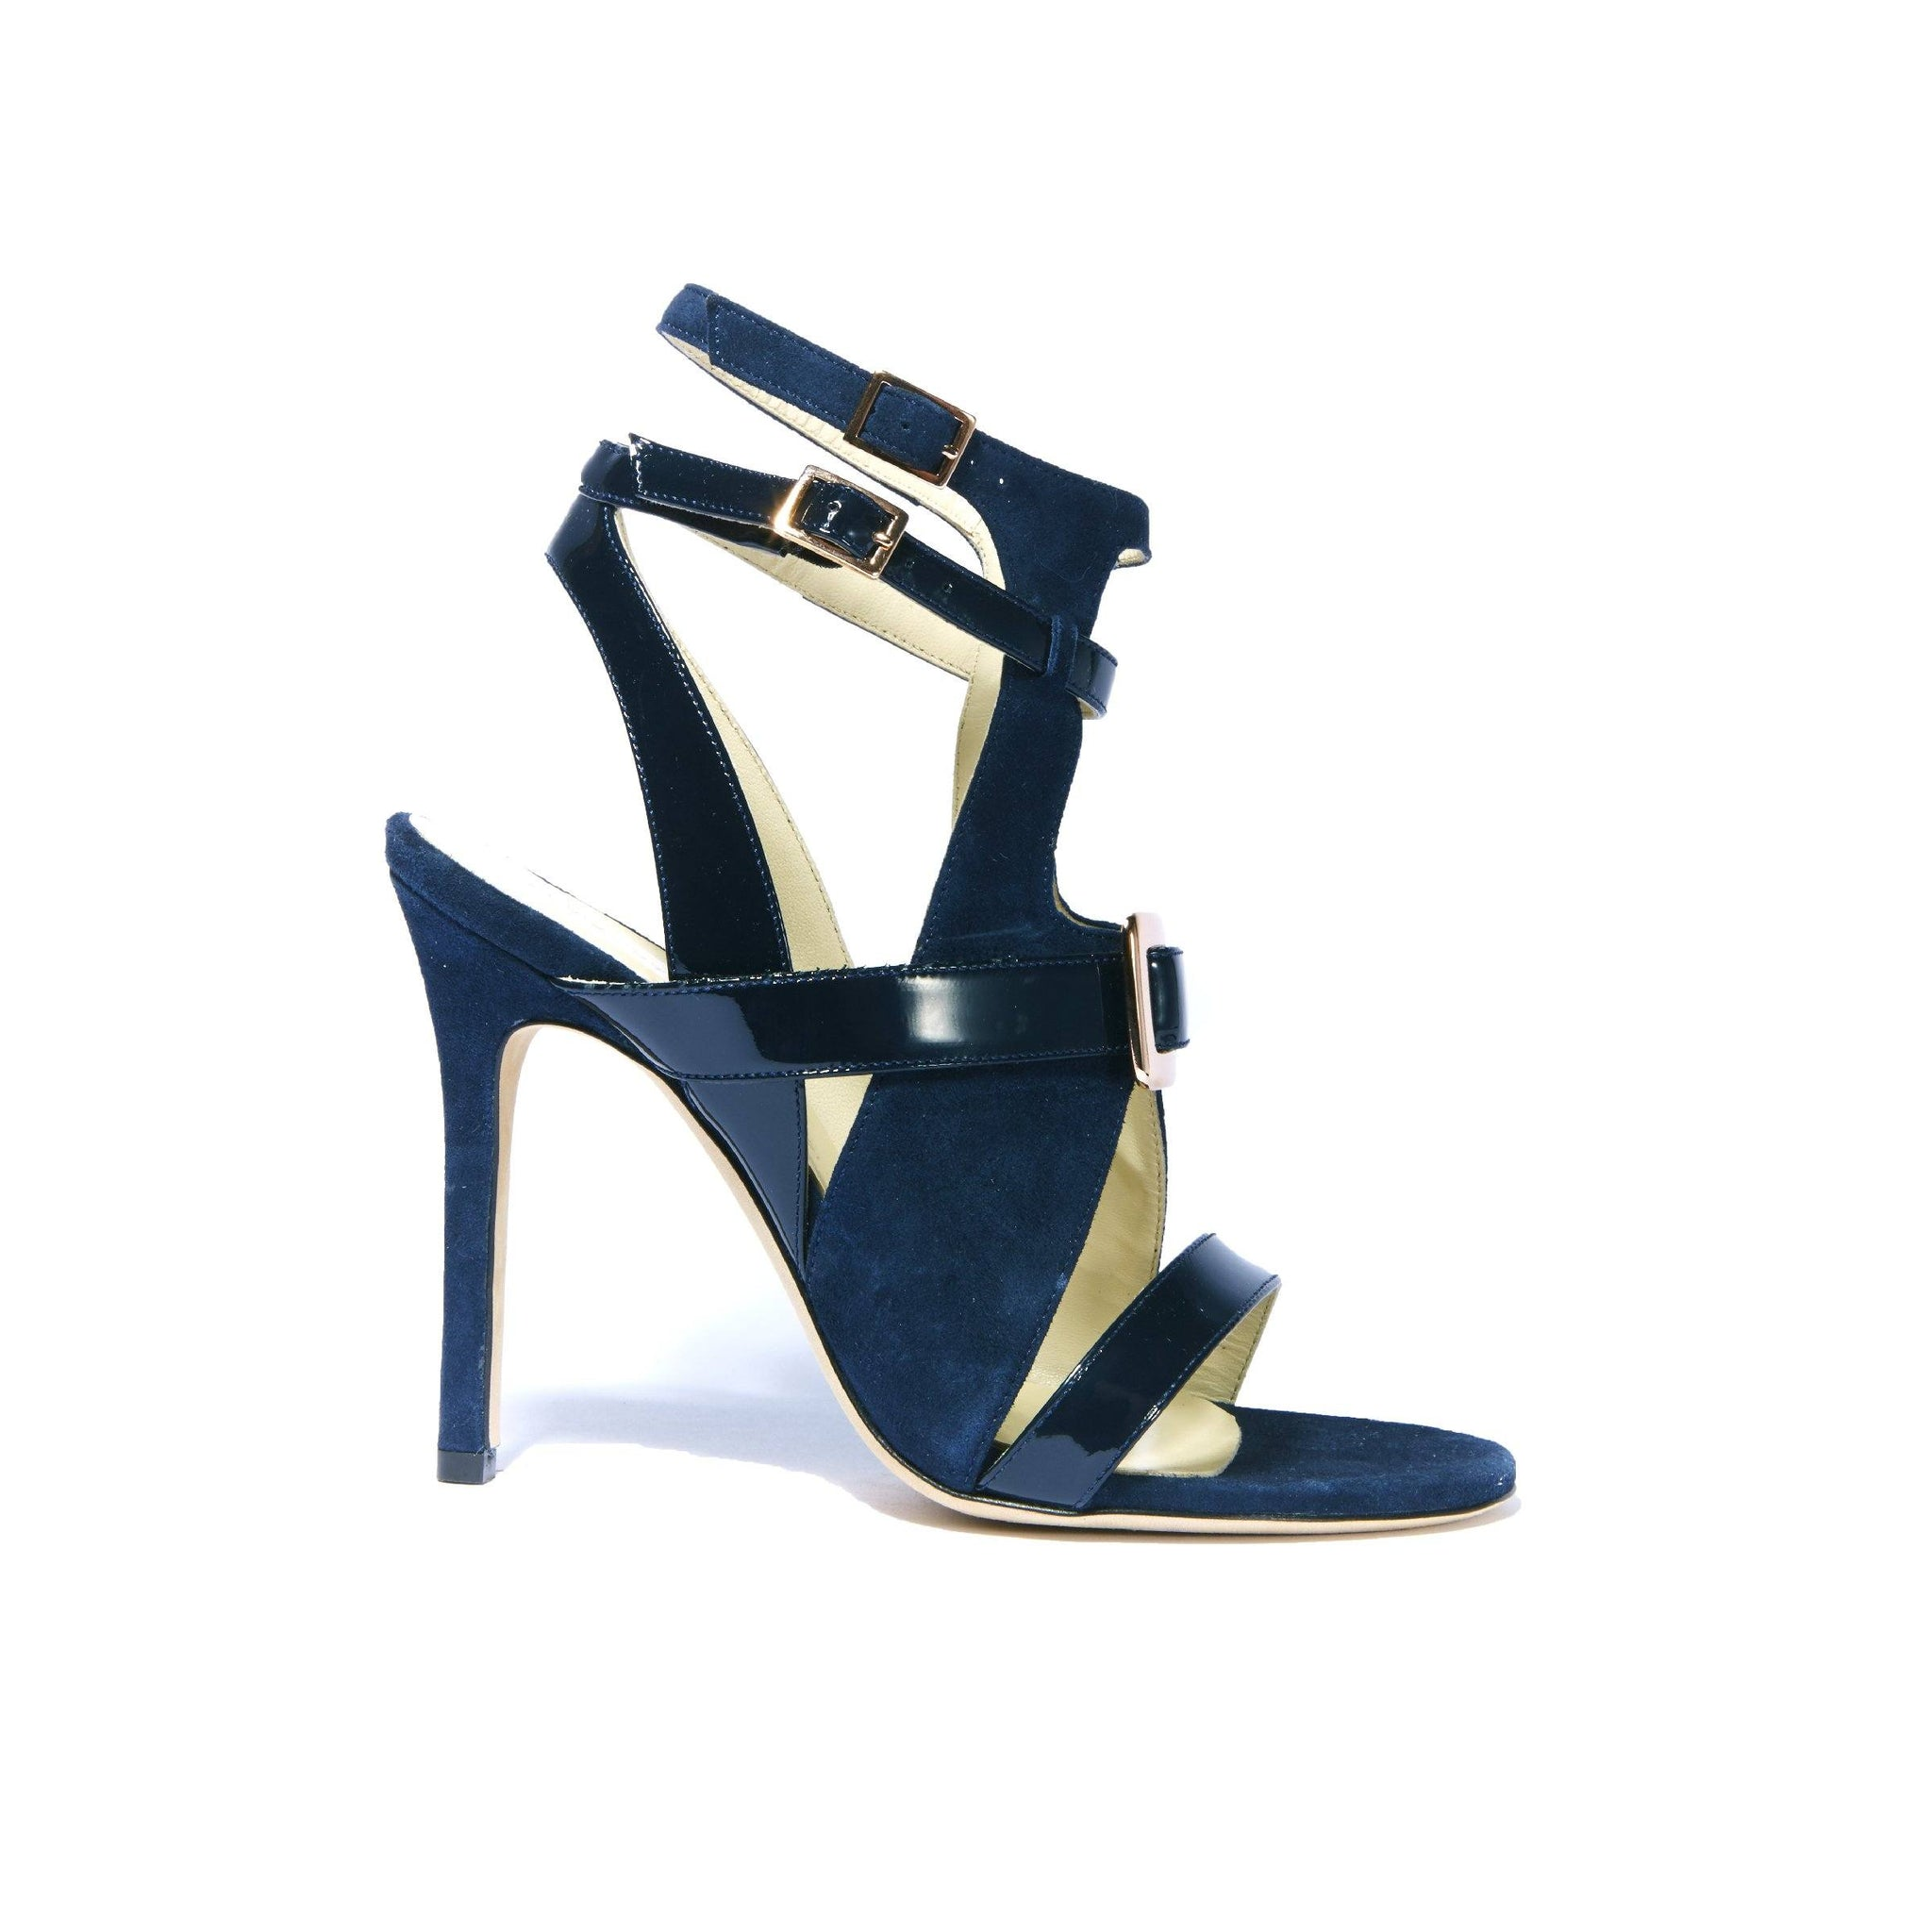 f3c956c559518 Mary Jo navy suede and patent leather open toe strappy heel with rose gold  buckle accent